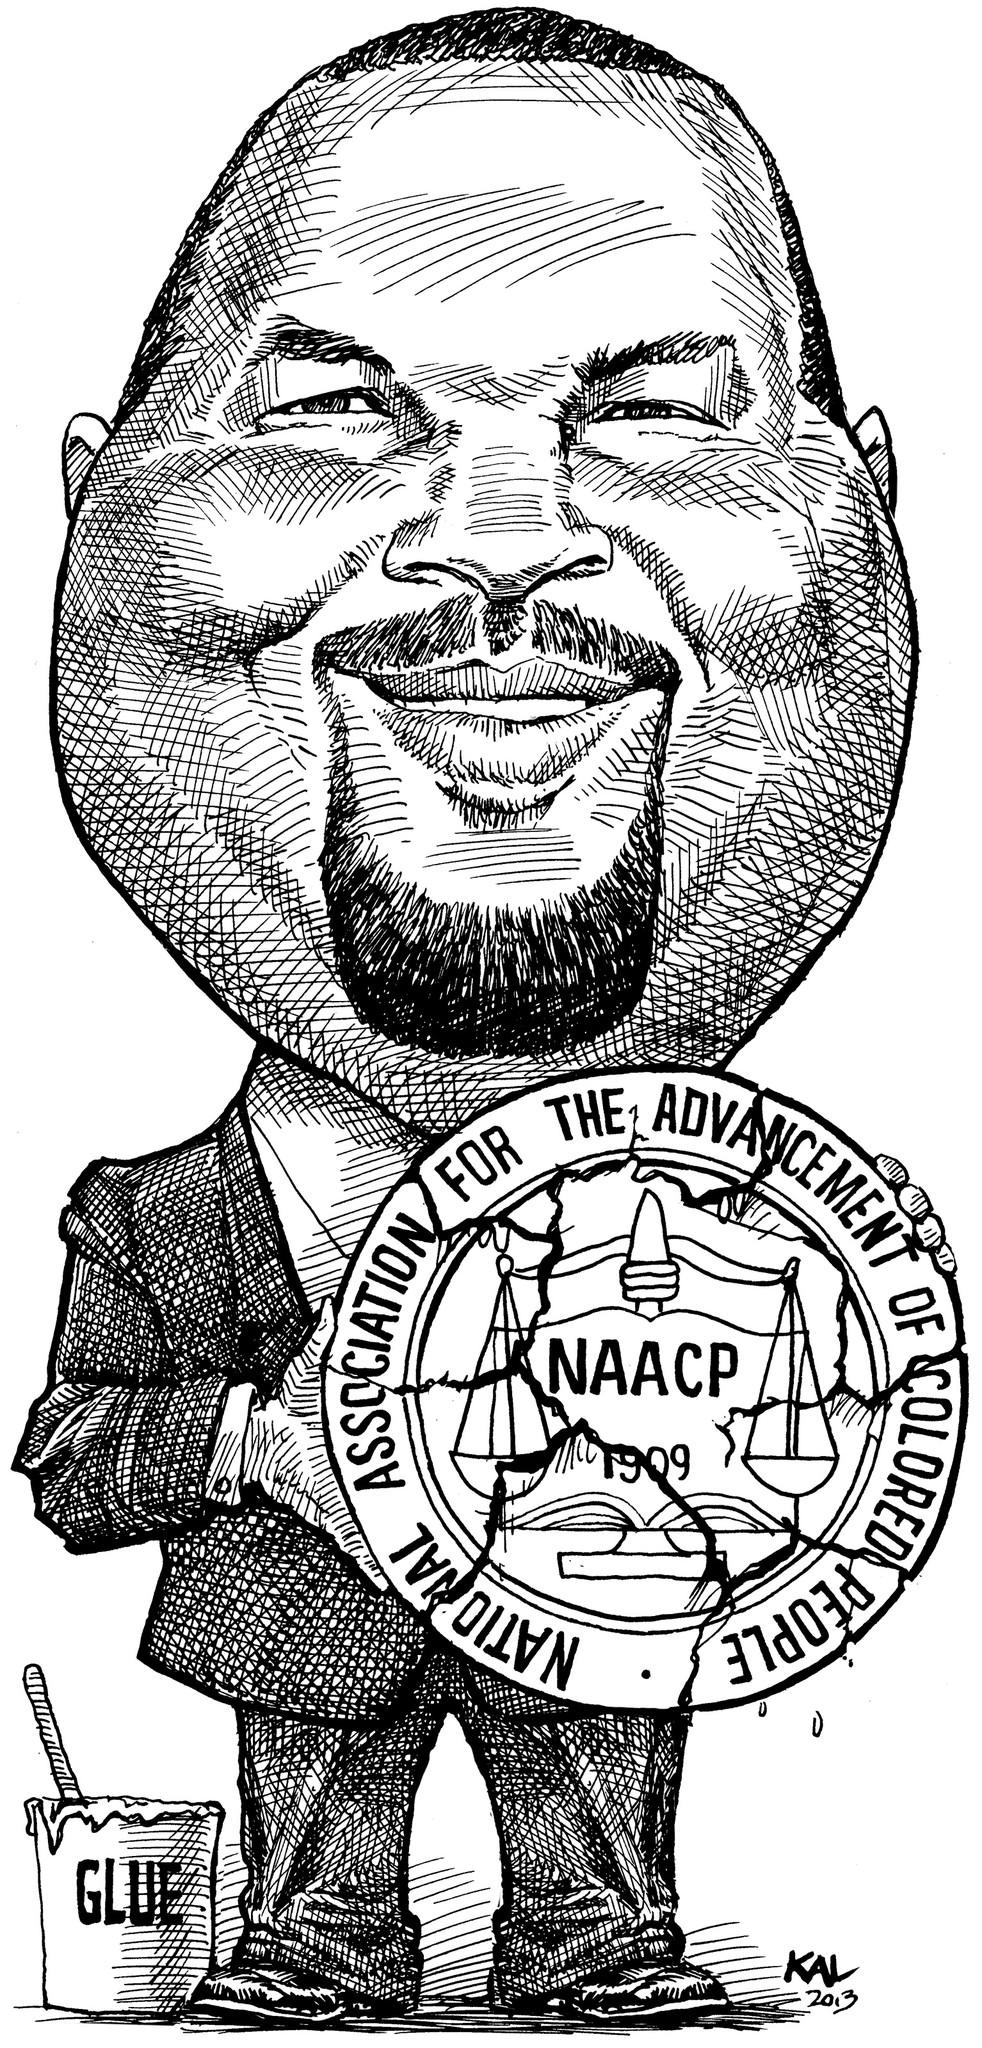 Benjamin Jealous took over the NAACP five years ago and transformed an institution in disarray into a vital force for social justice in the 21st century.